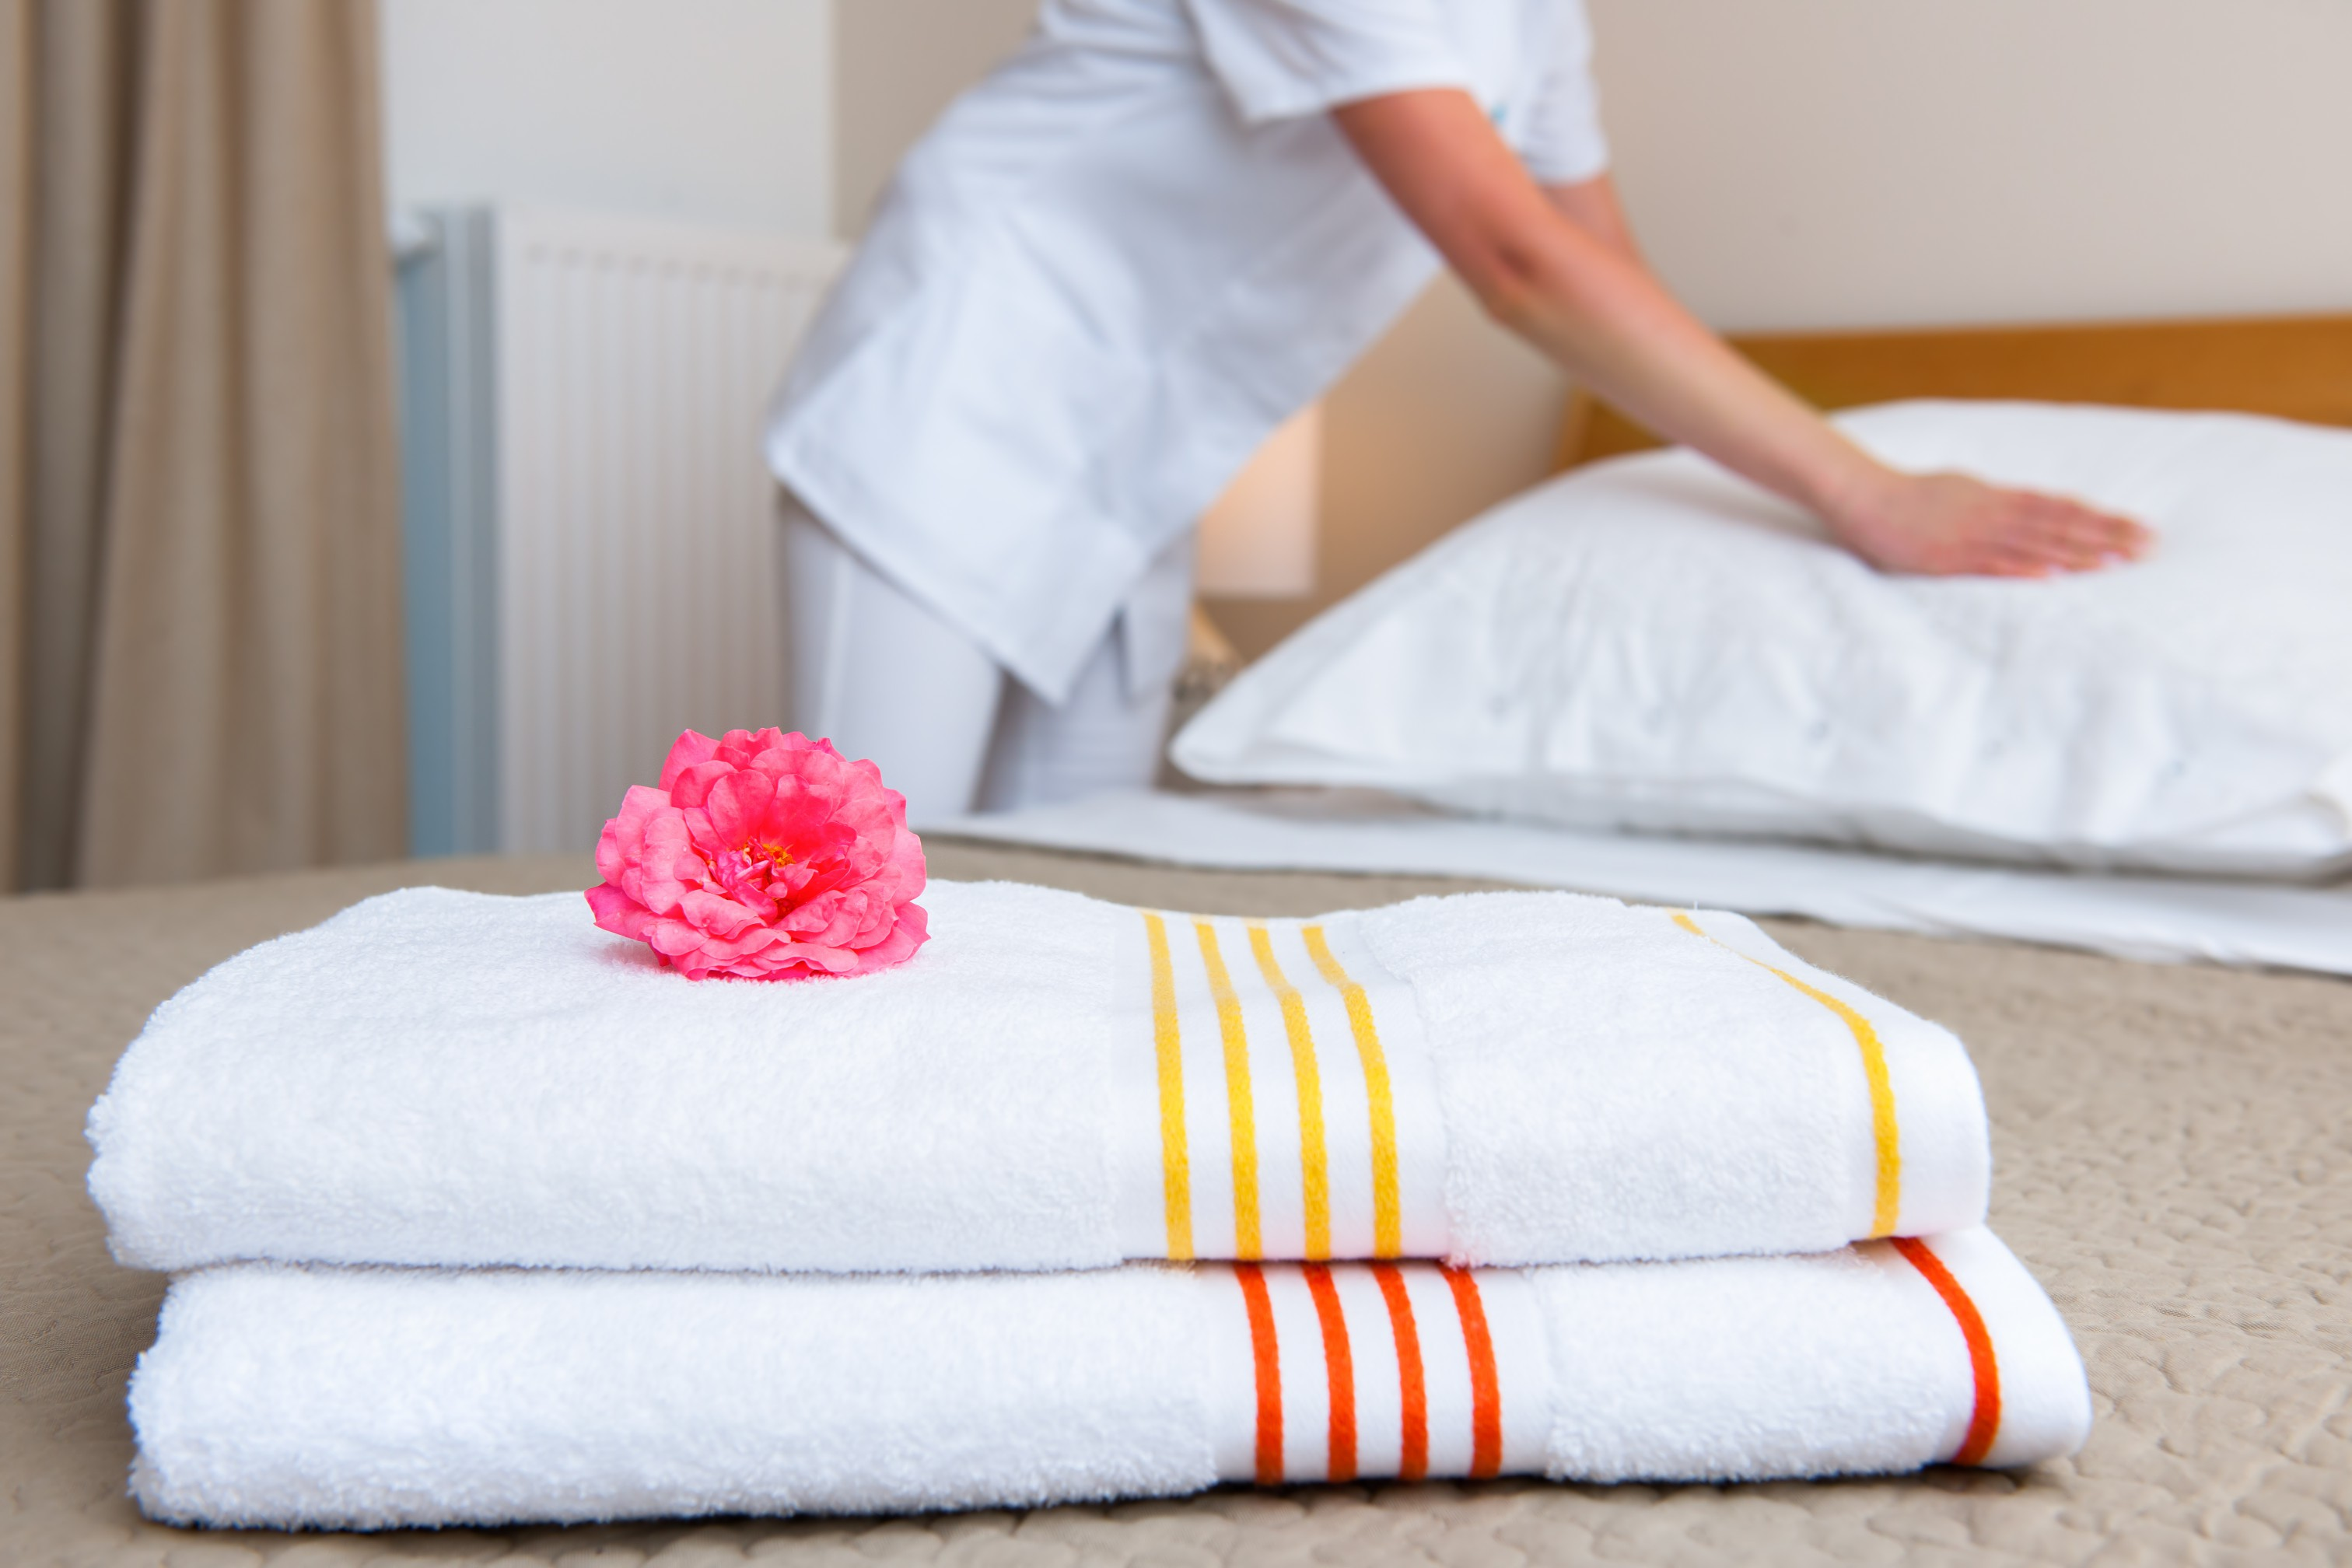 Hotel Housekeepers Getting Sexually Harassed And Assaulted By Guests (Don't Fear Retaliation, Here's What You Can Do)